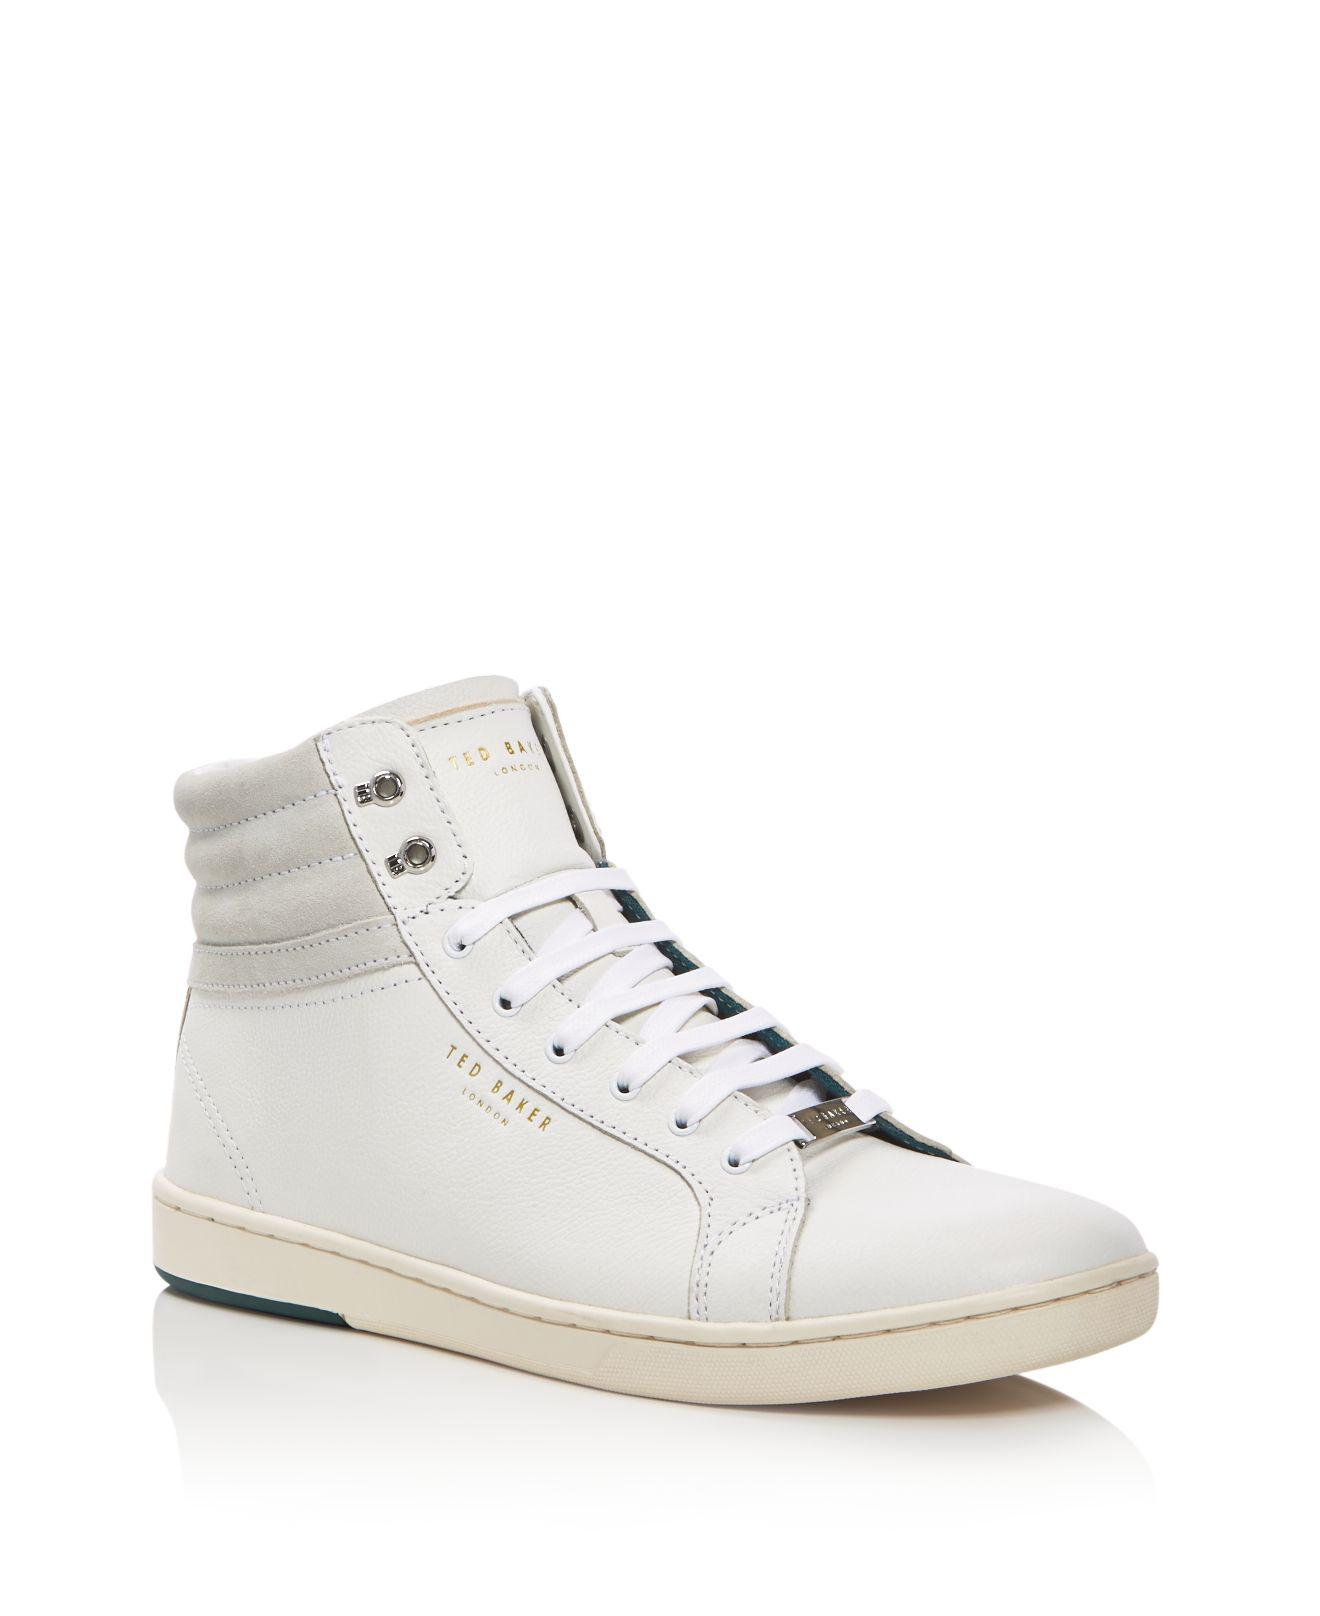 Ted Baker Mykka High Top Sneakers